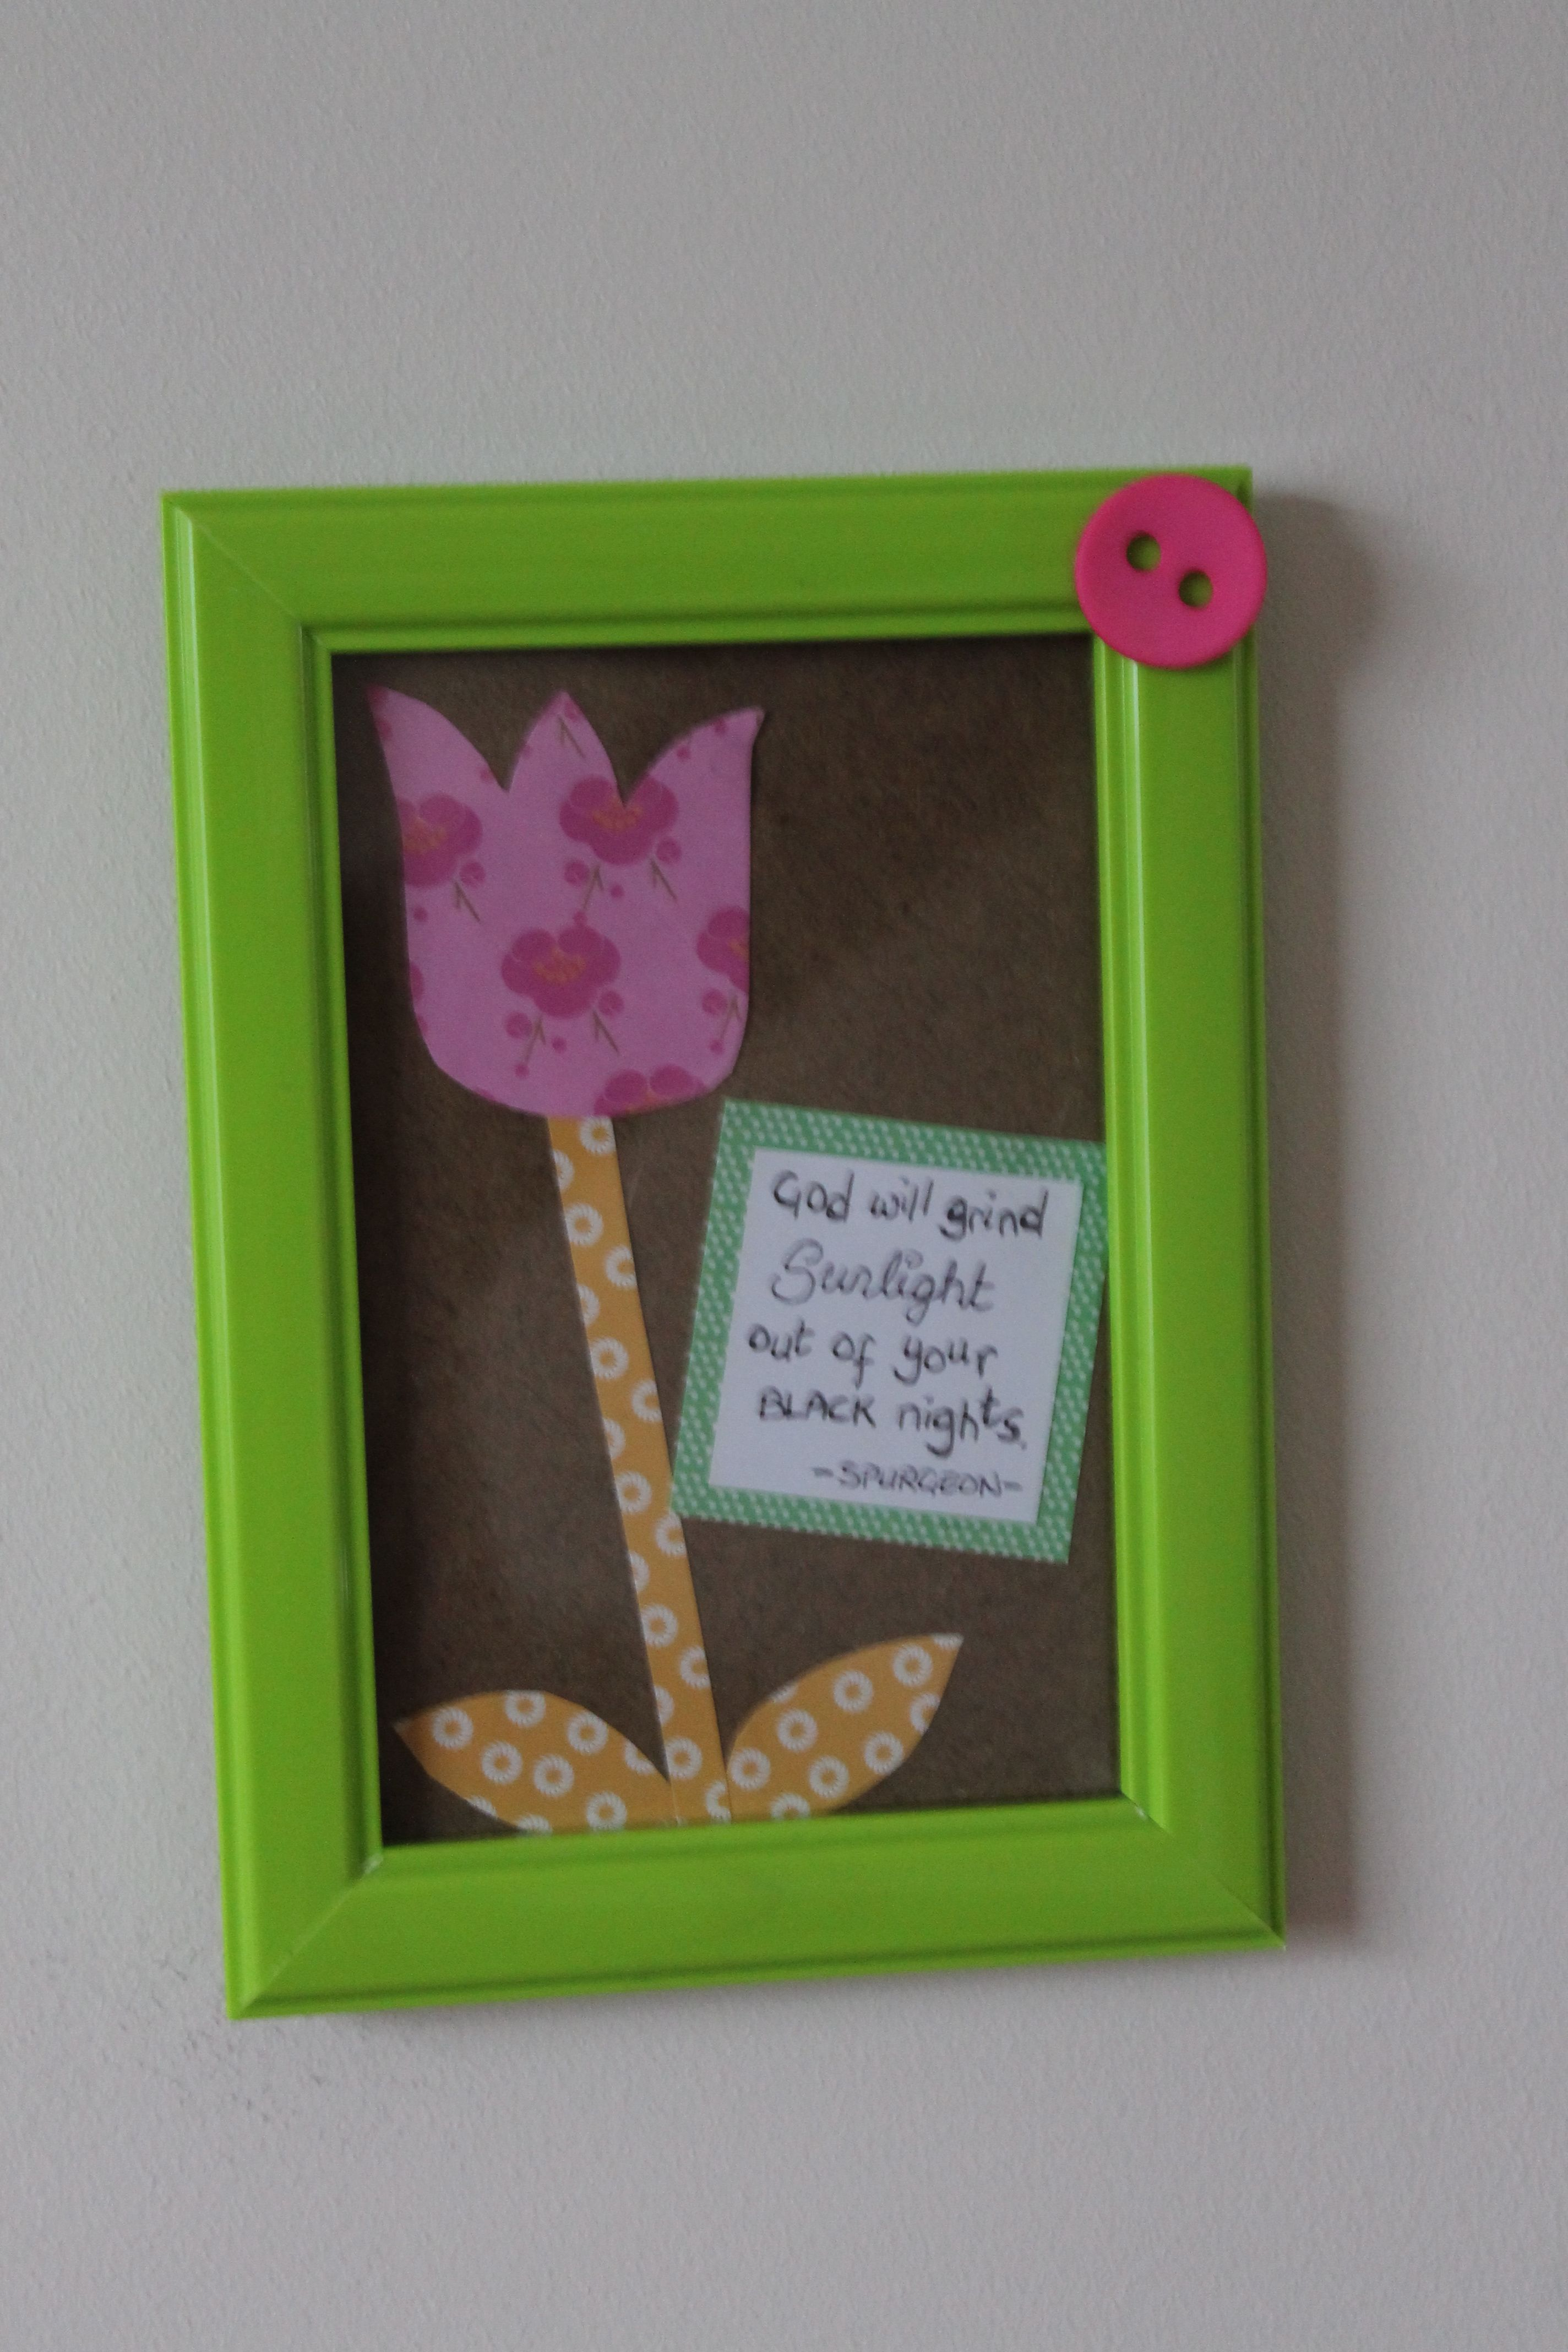 God will grind sunlight out of your black nights  http://www.etsy.com/shop/TheHomemadeHutte